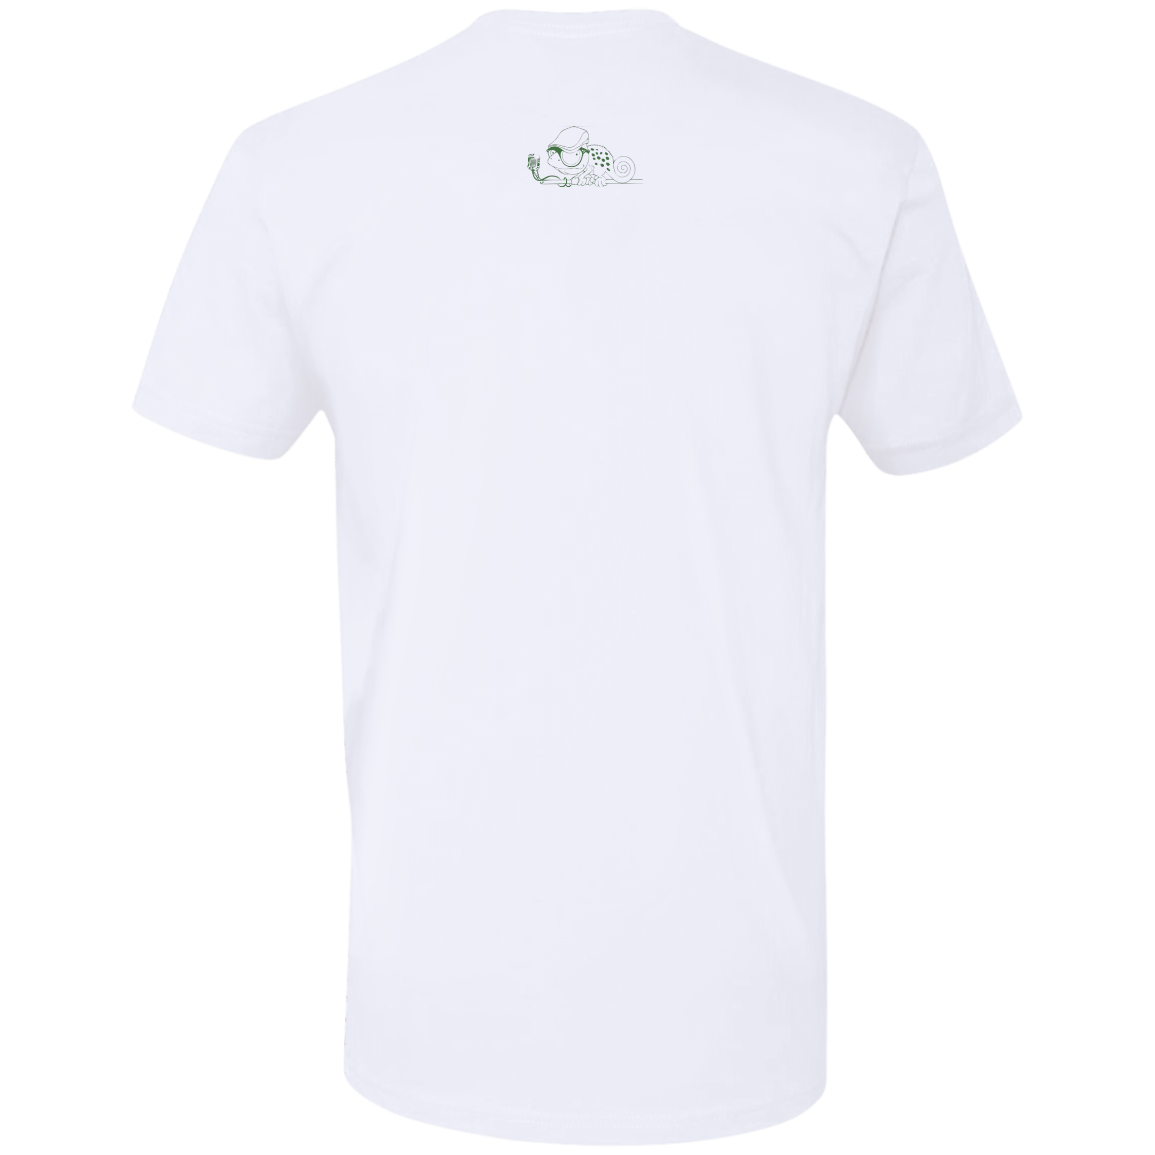 NwClr Signature T-Shirt